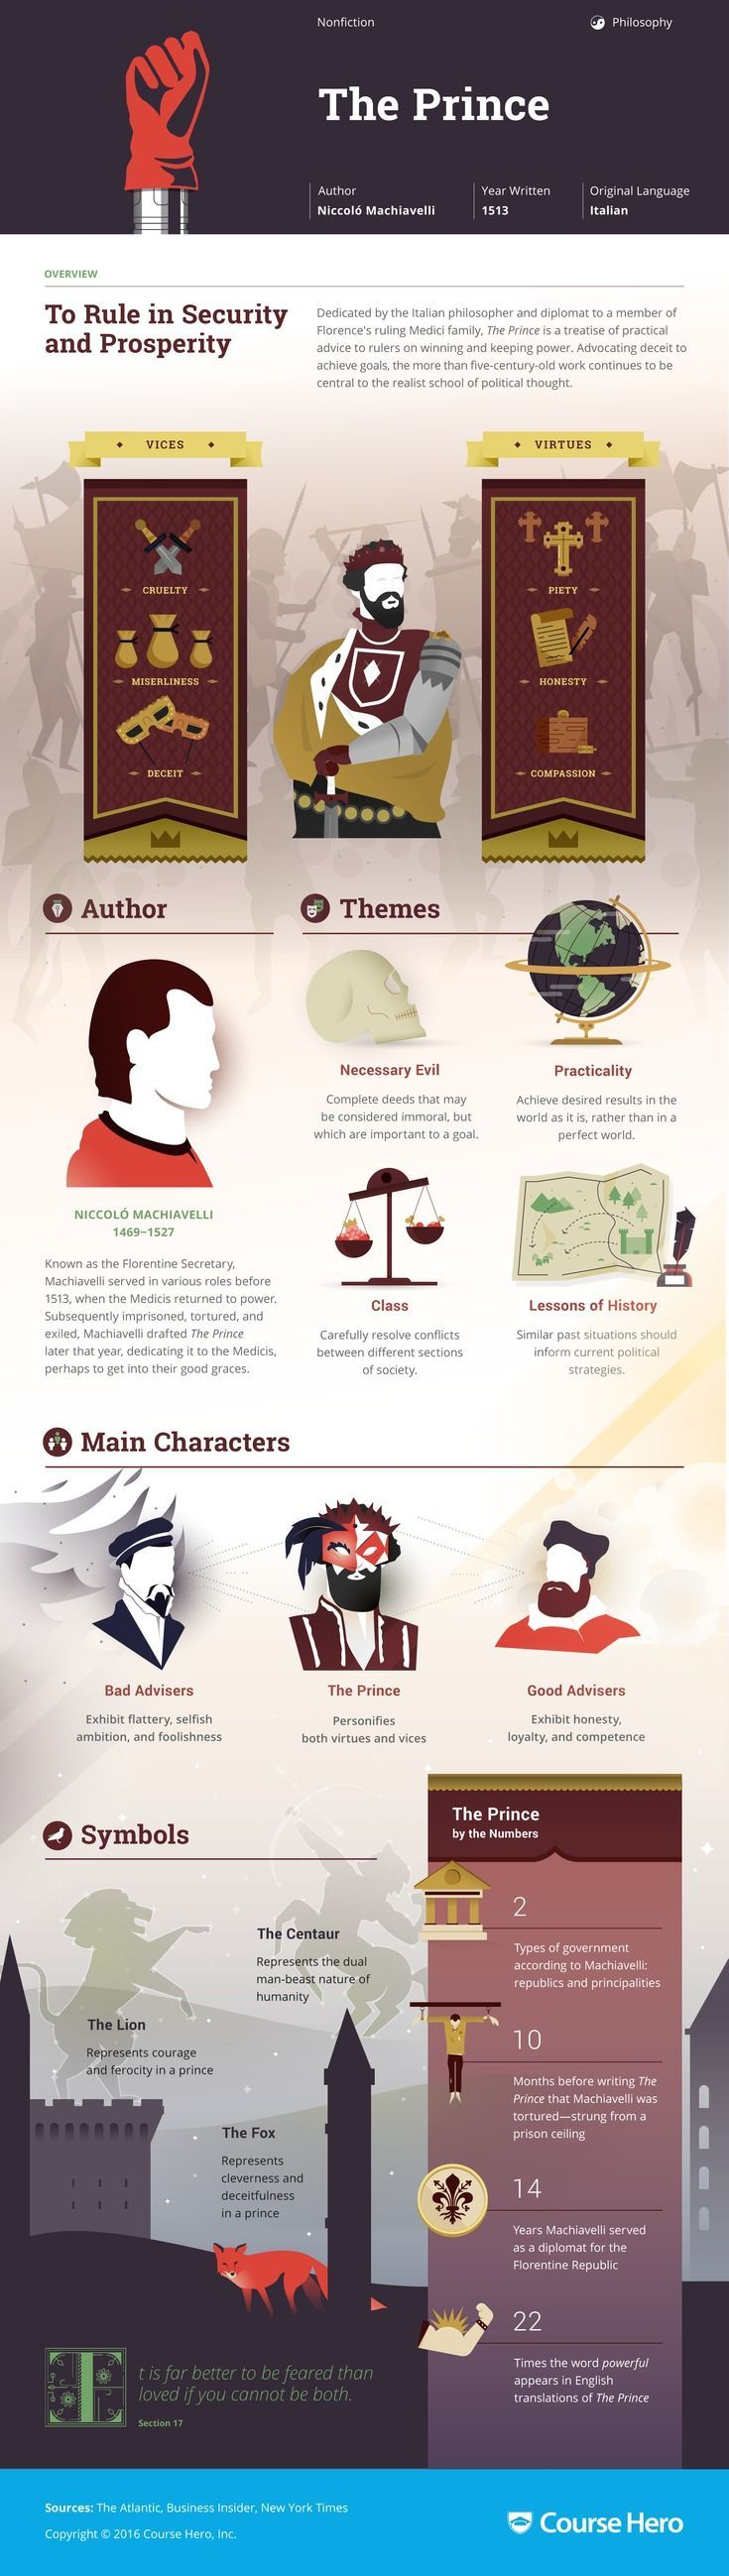 best ideas about night elie wiesel summary music this the prince infographic from course hero is as awesome as it is helpful